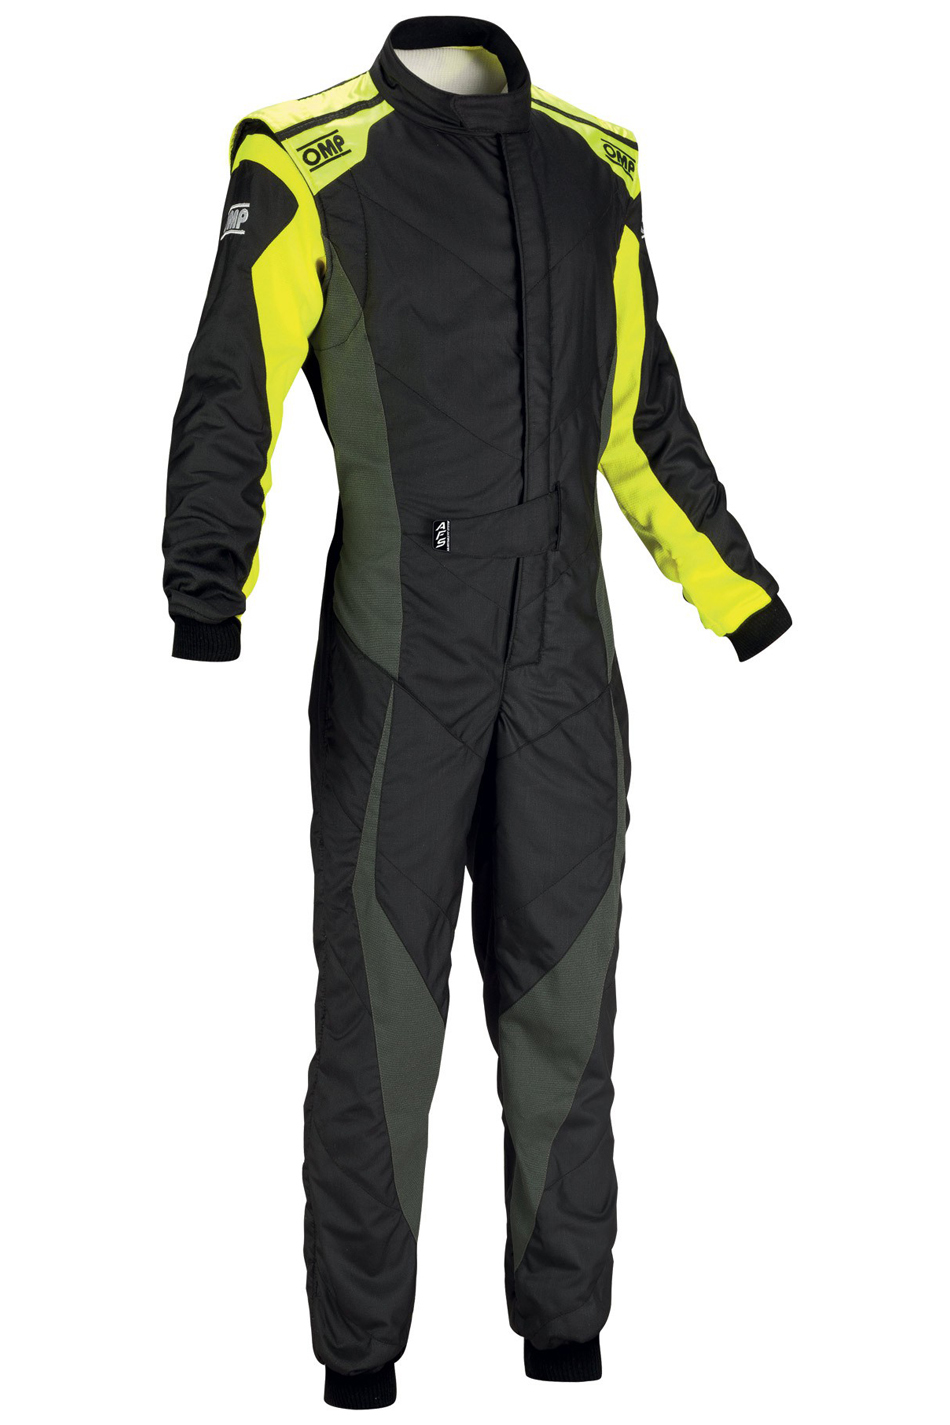 OMP Racing IA0185917854 Suit, Tecnica Evo, Driving, 1 Piece, SFI 3.2A/5, FIA Approved, Double Layer, Fire Retardant Fabric, Black/Yellow, Size 54, Medium/Large, Each